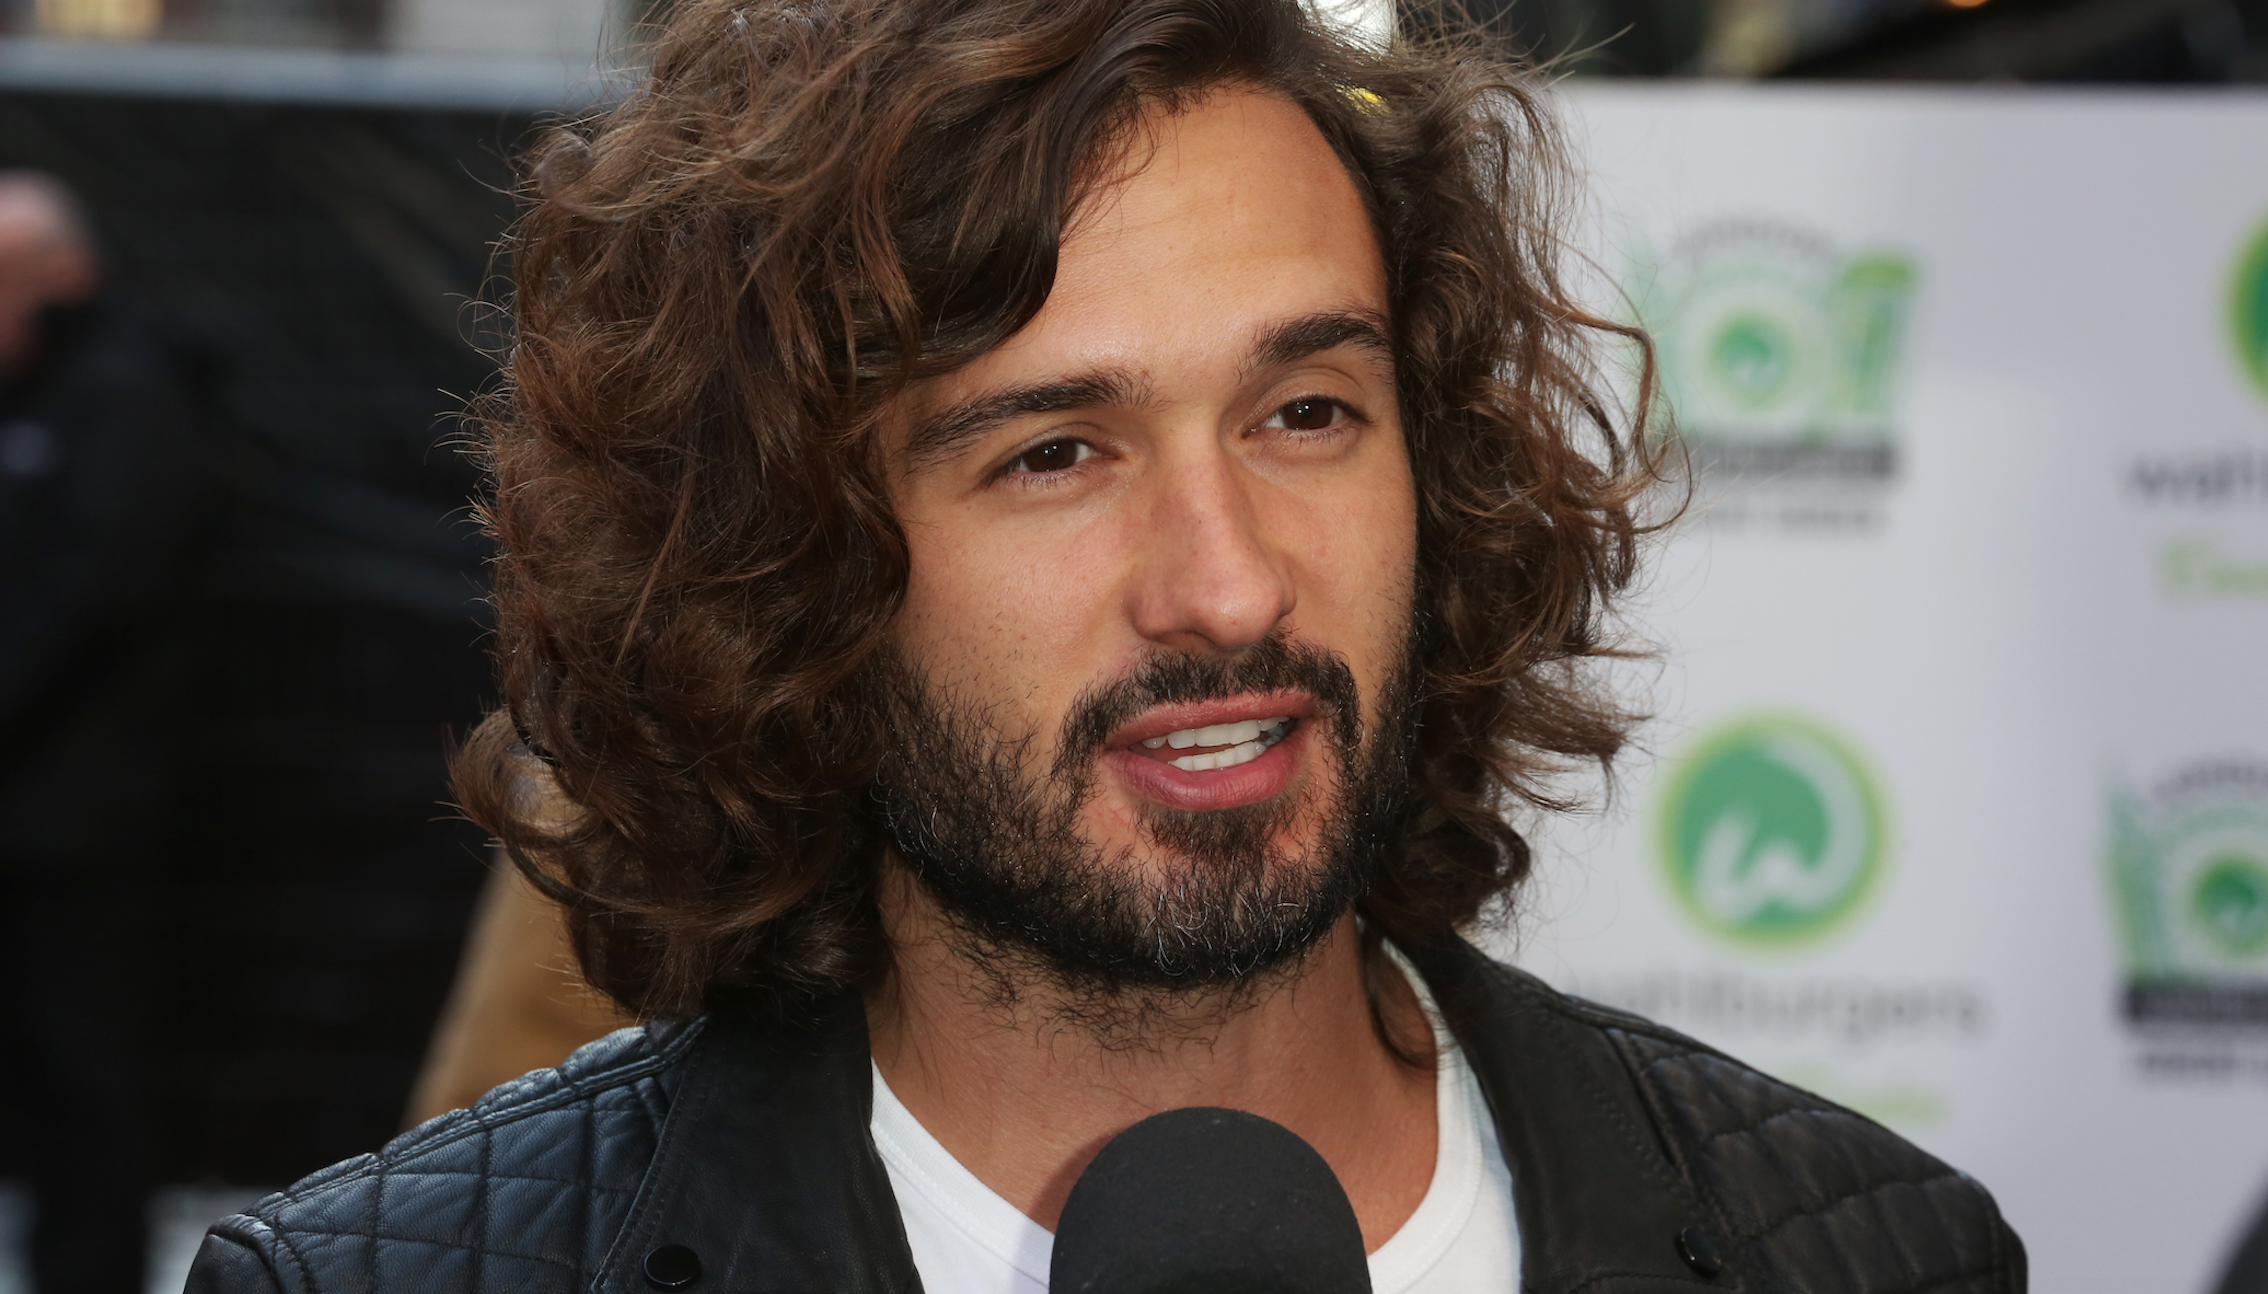 Body Coach Joe Wicks defends himself against 'mum-shaming' accusations